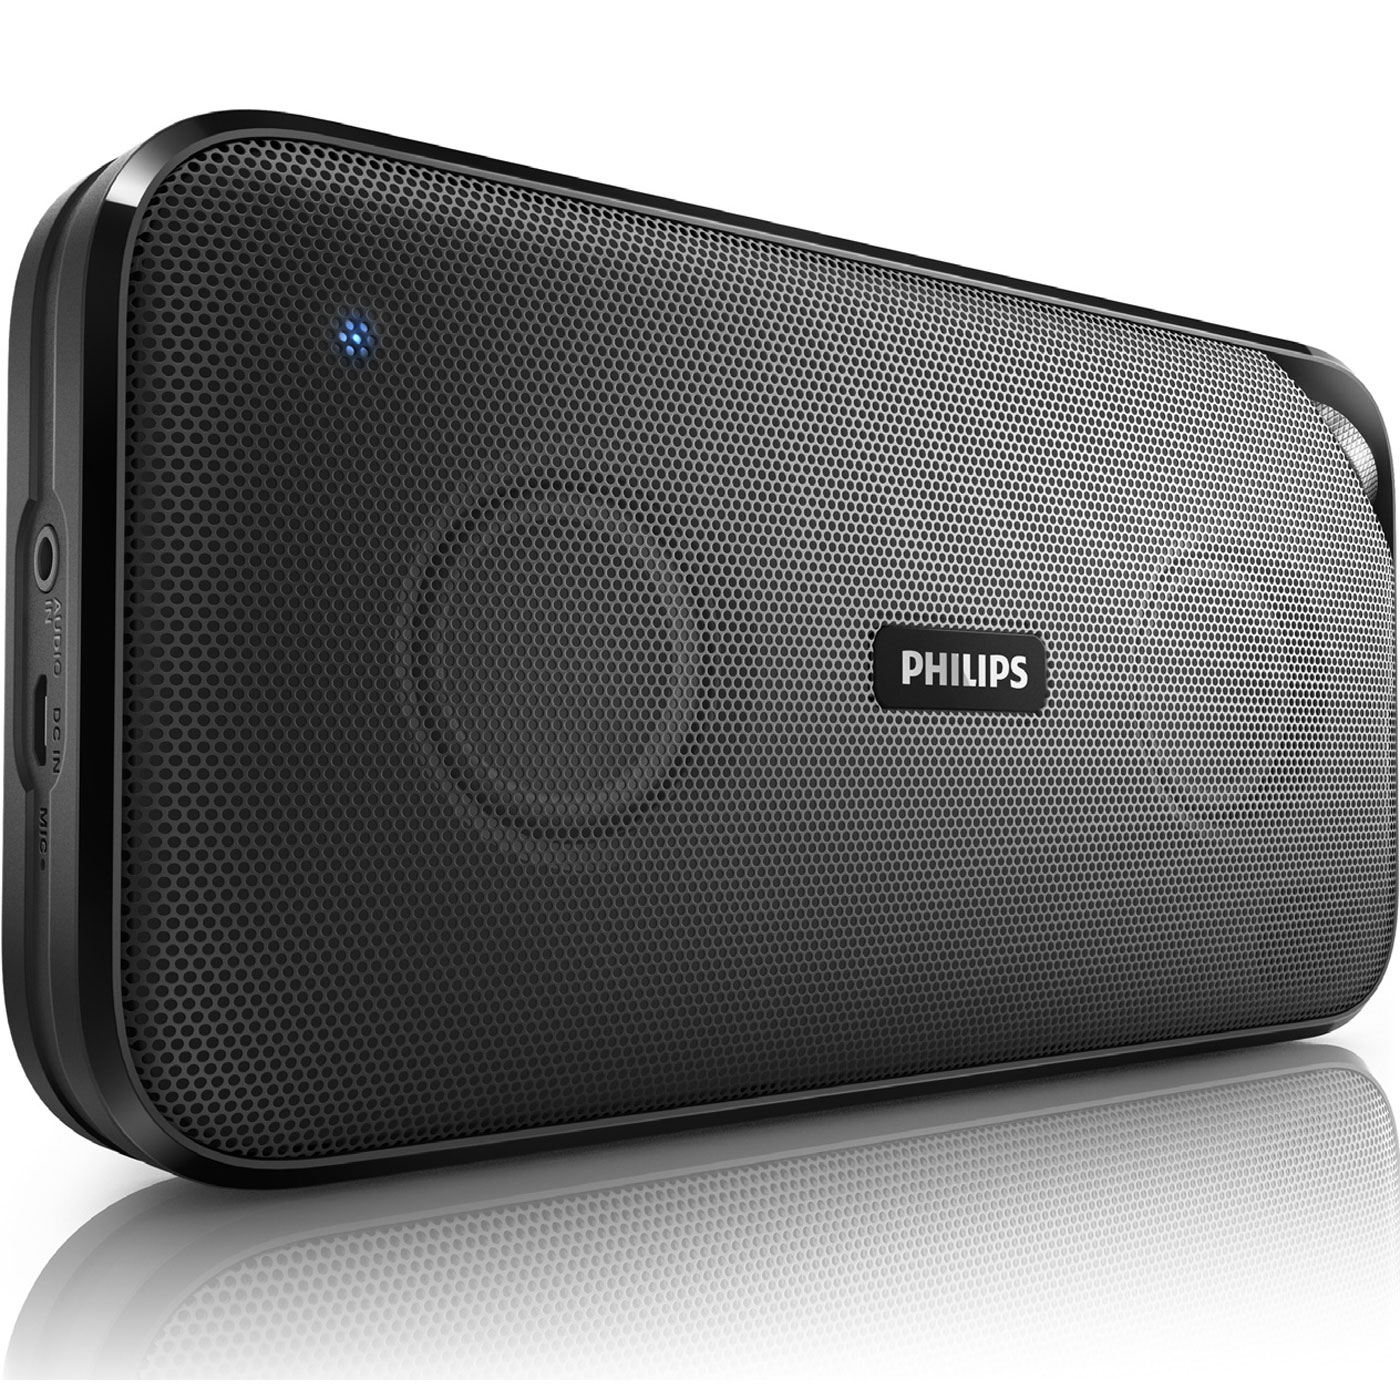 philips bt3500 noir dock enceinte bluetooth philips sur ldlc. Black Bedroom Furniture Sets. Home Design Ideas